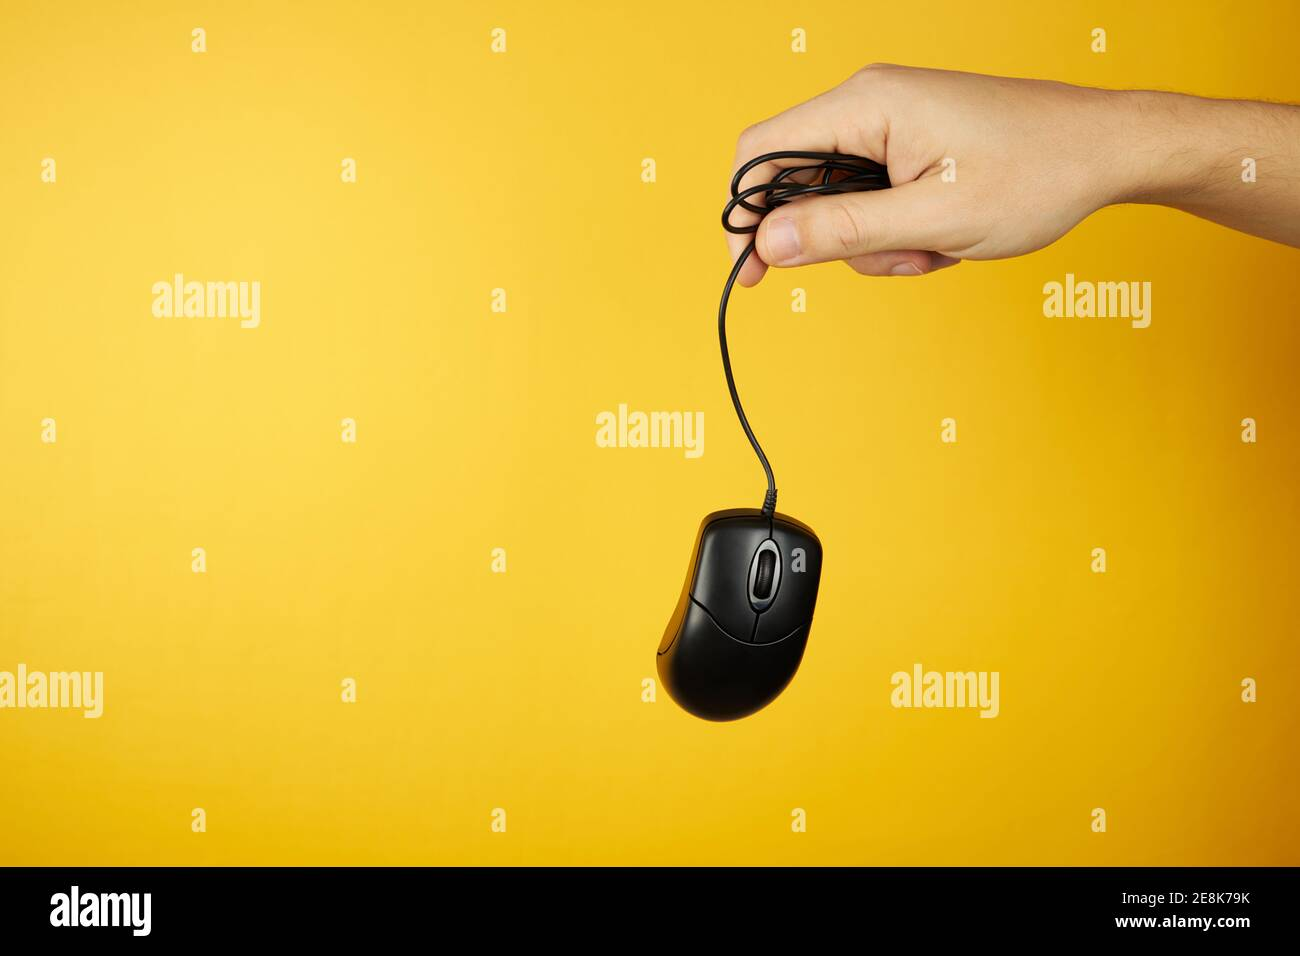 The black computer mouse at hand on a yellow background with copy space. hardware maintenance service concept Stock Photo